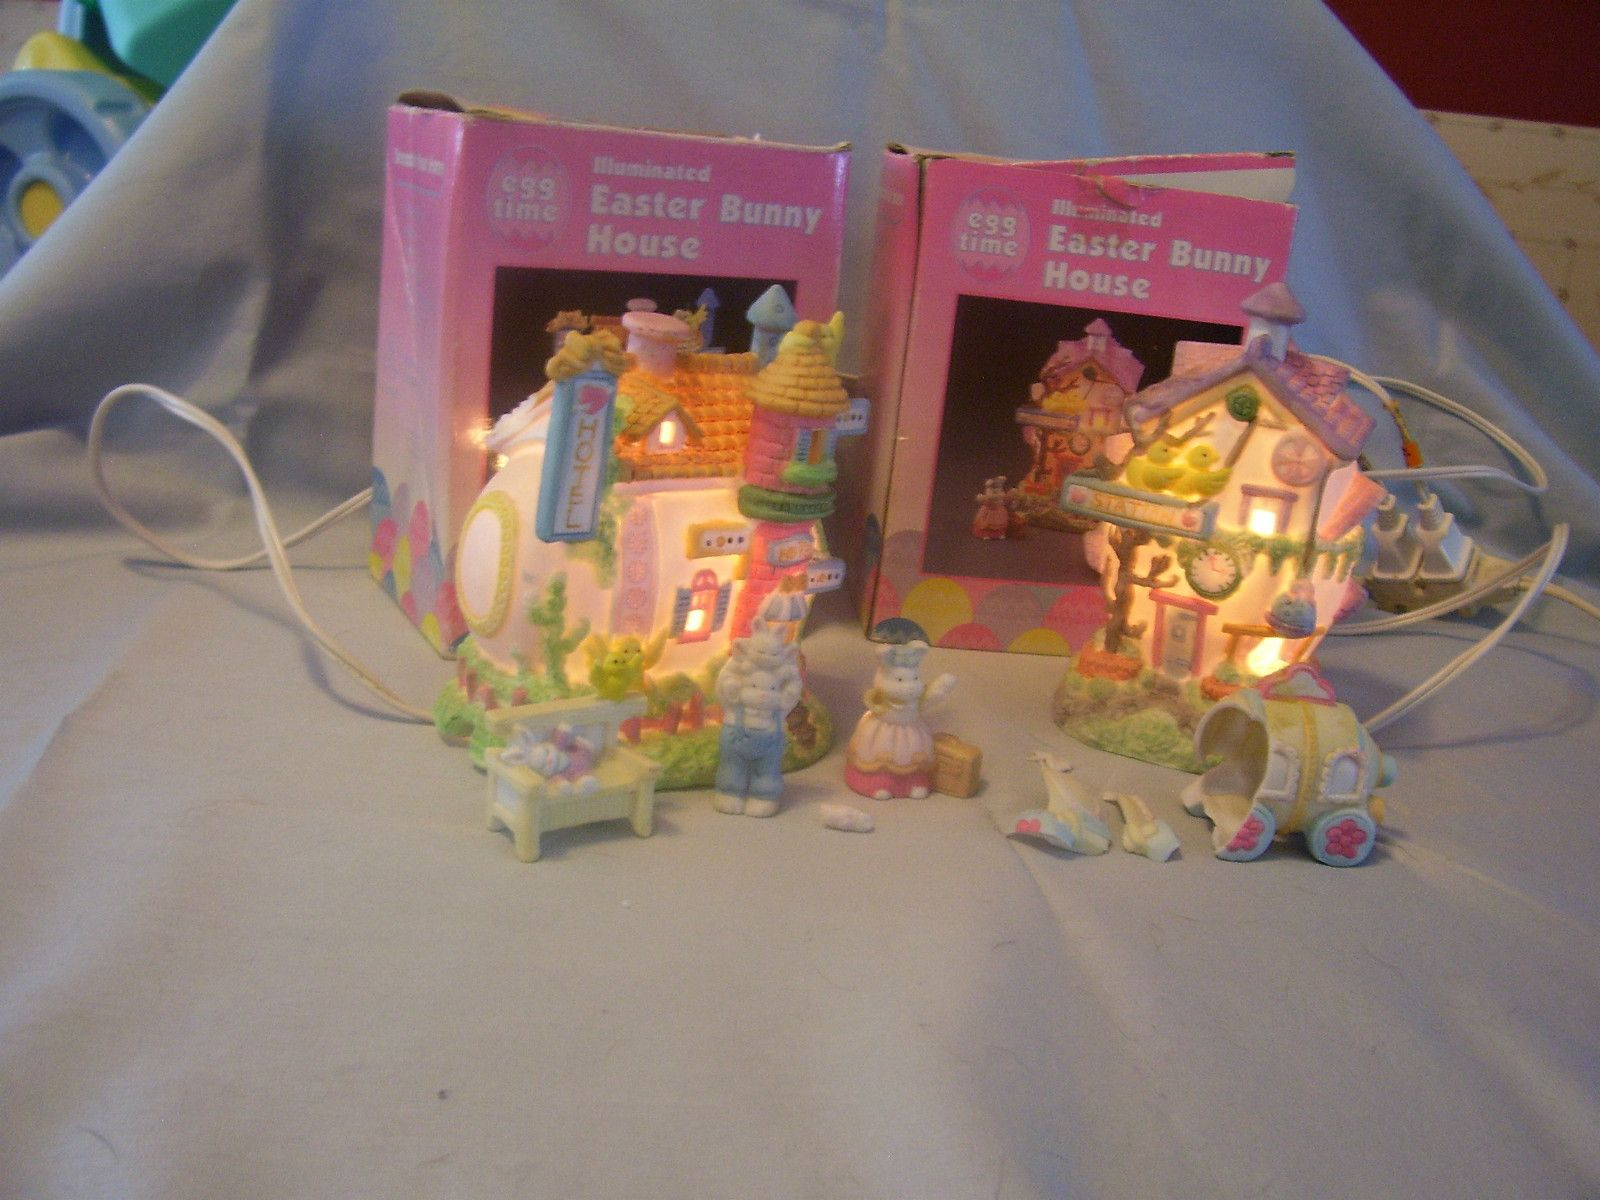 Illuminated easter bunny house nightlights with figurines for Kmart fish tank